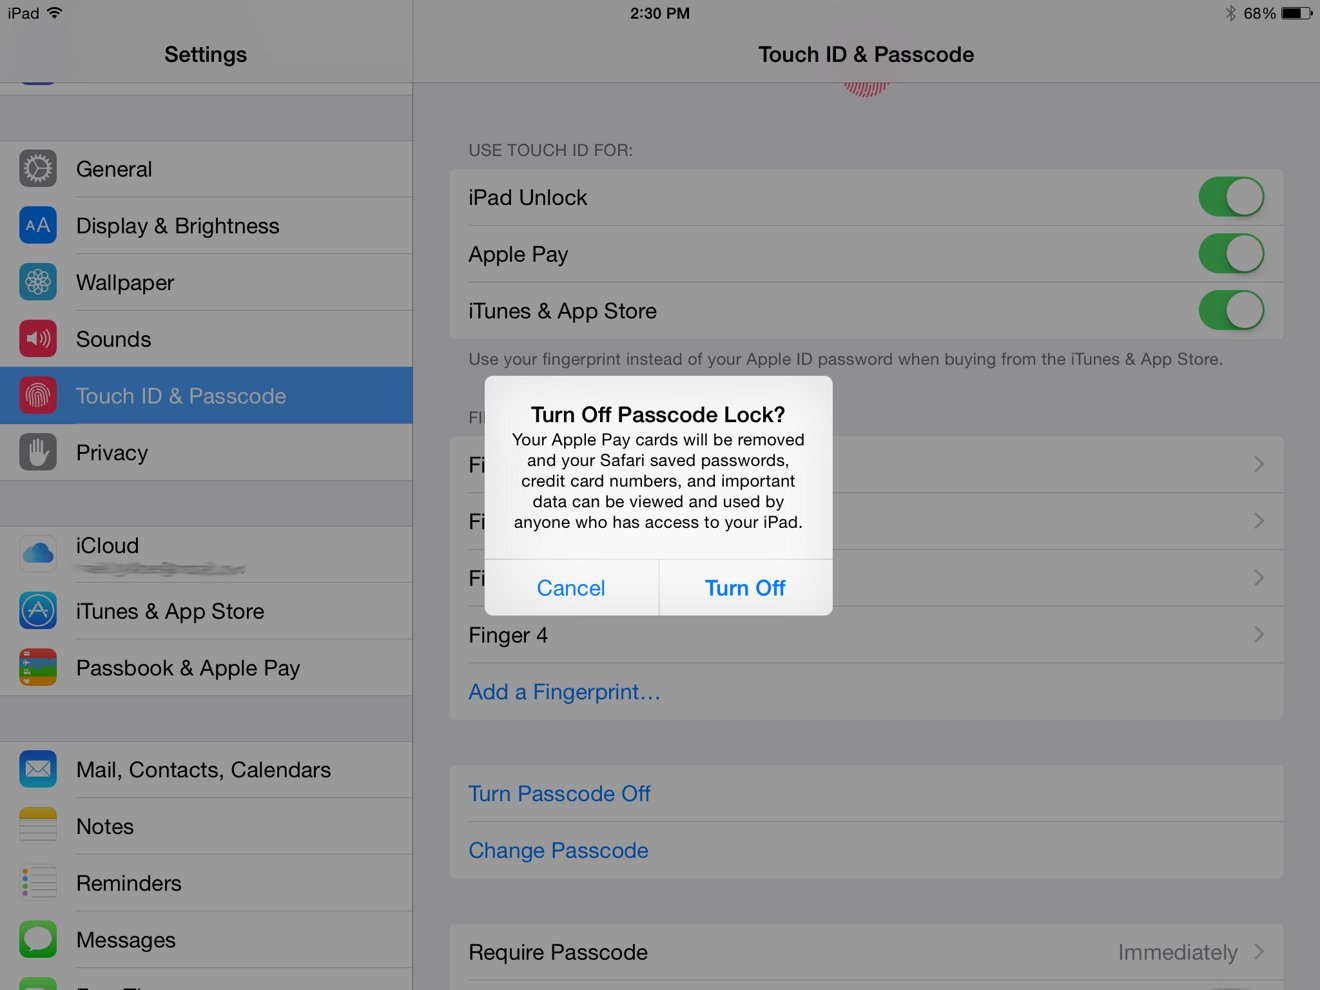 Opinion: Touch ID improves iPad security at cost of Smart Cover unlock convenience   AppleInsider